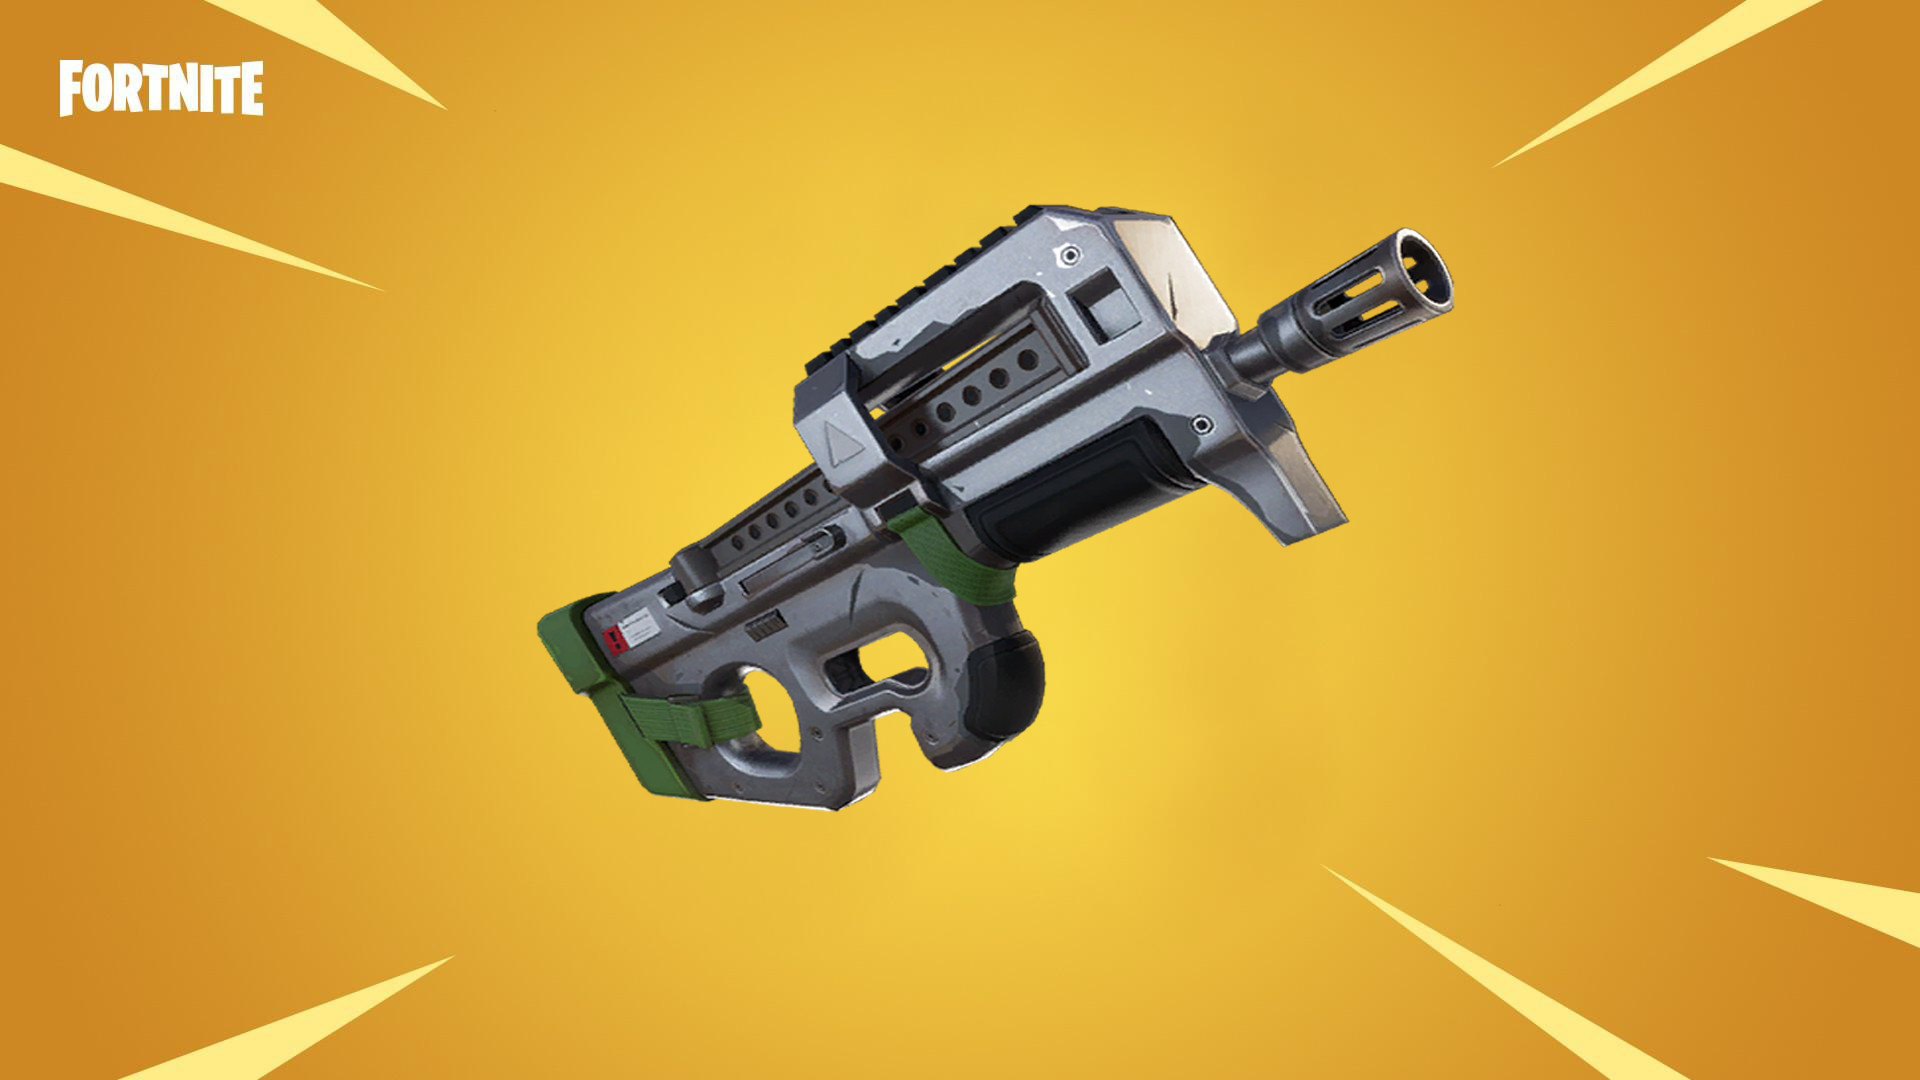 v7.10 content update # 3. It will return to unusual, rare and epic ratices for the 14 days of the Summer Event.